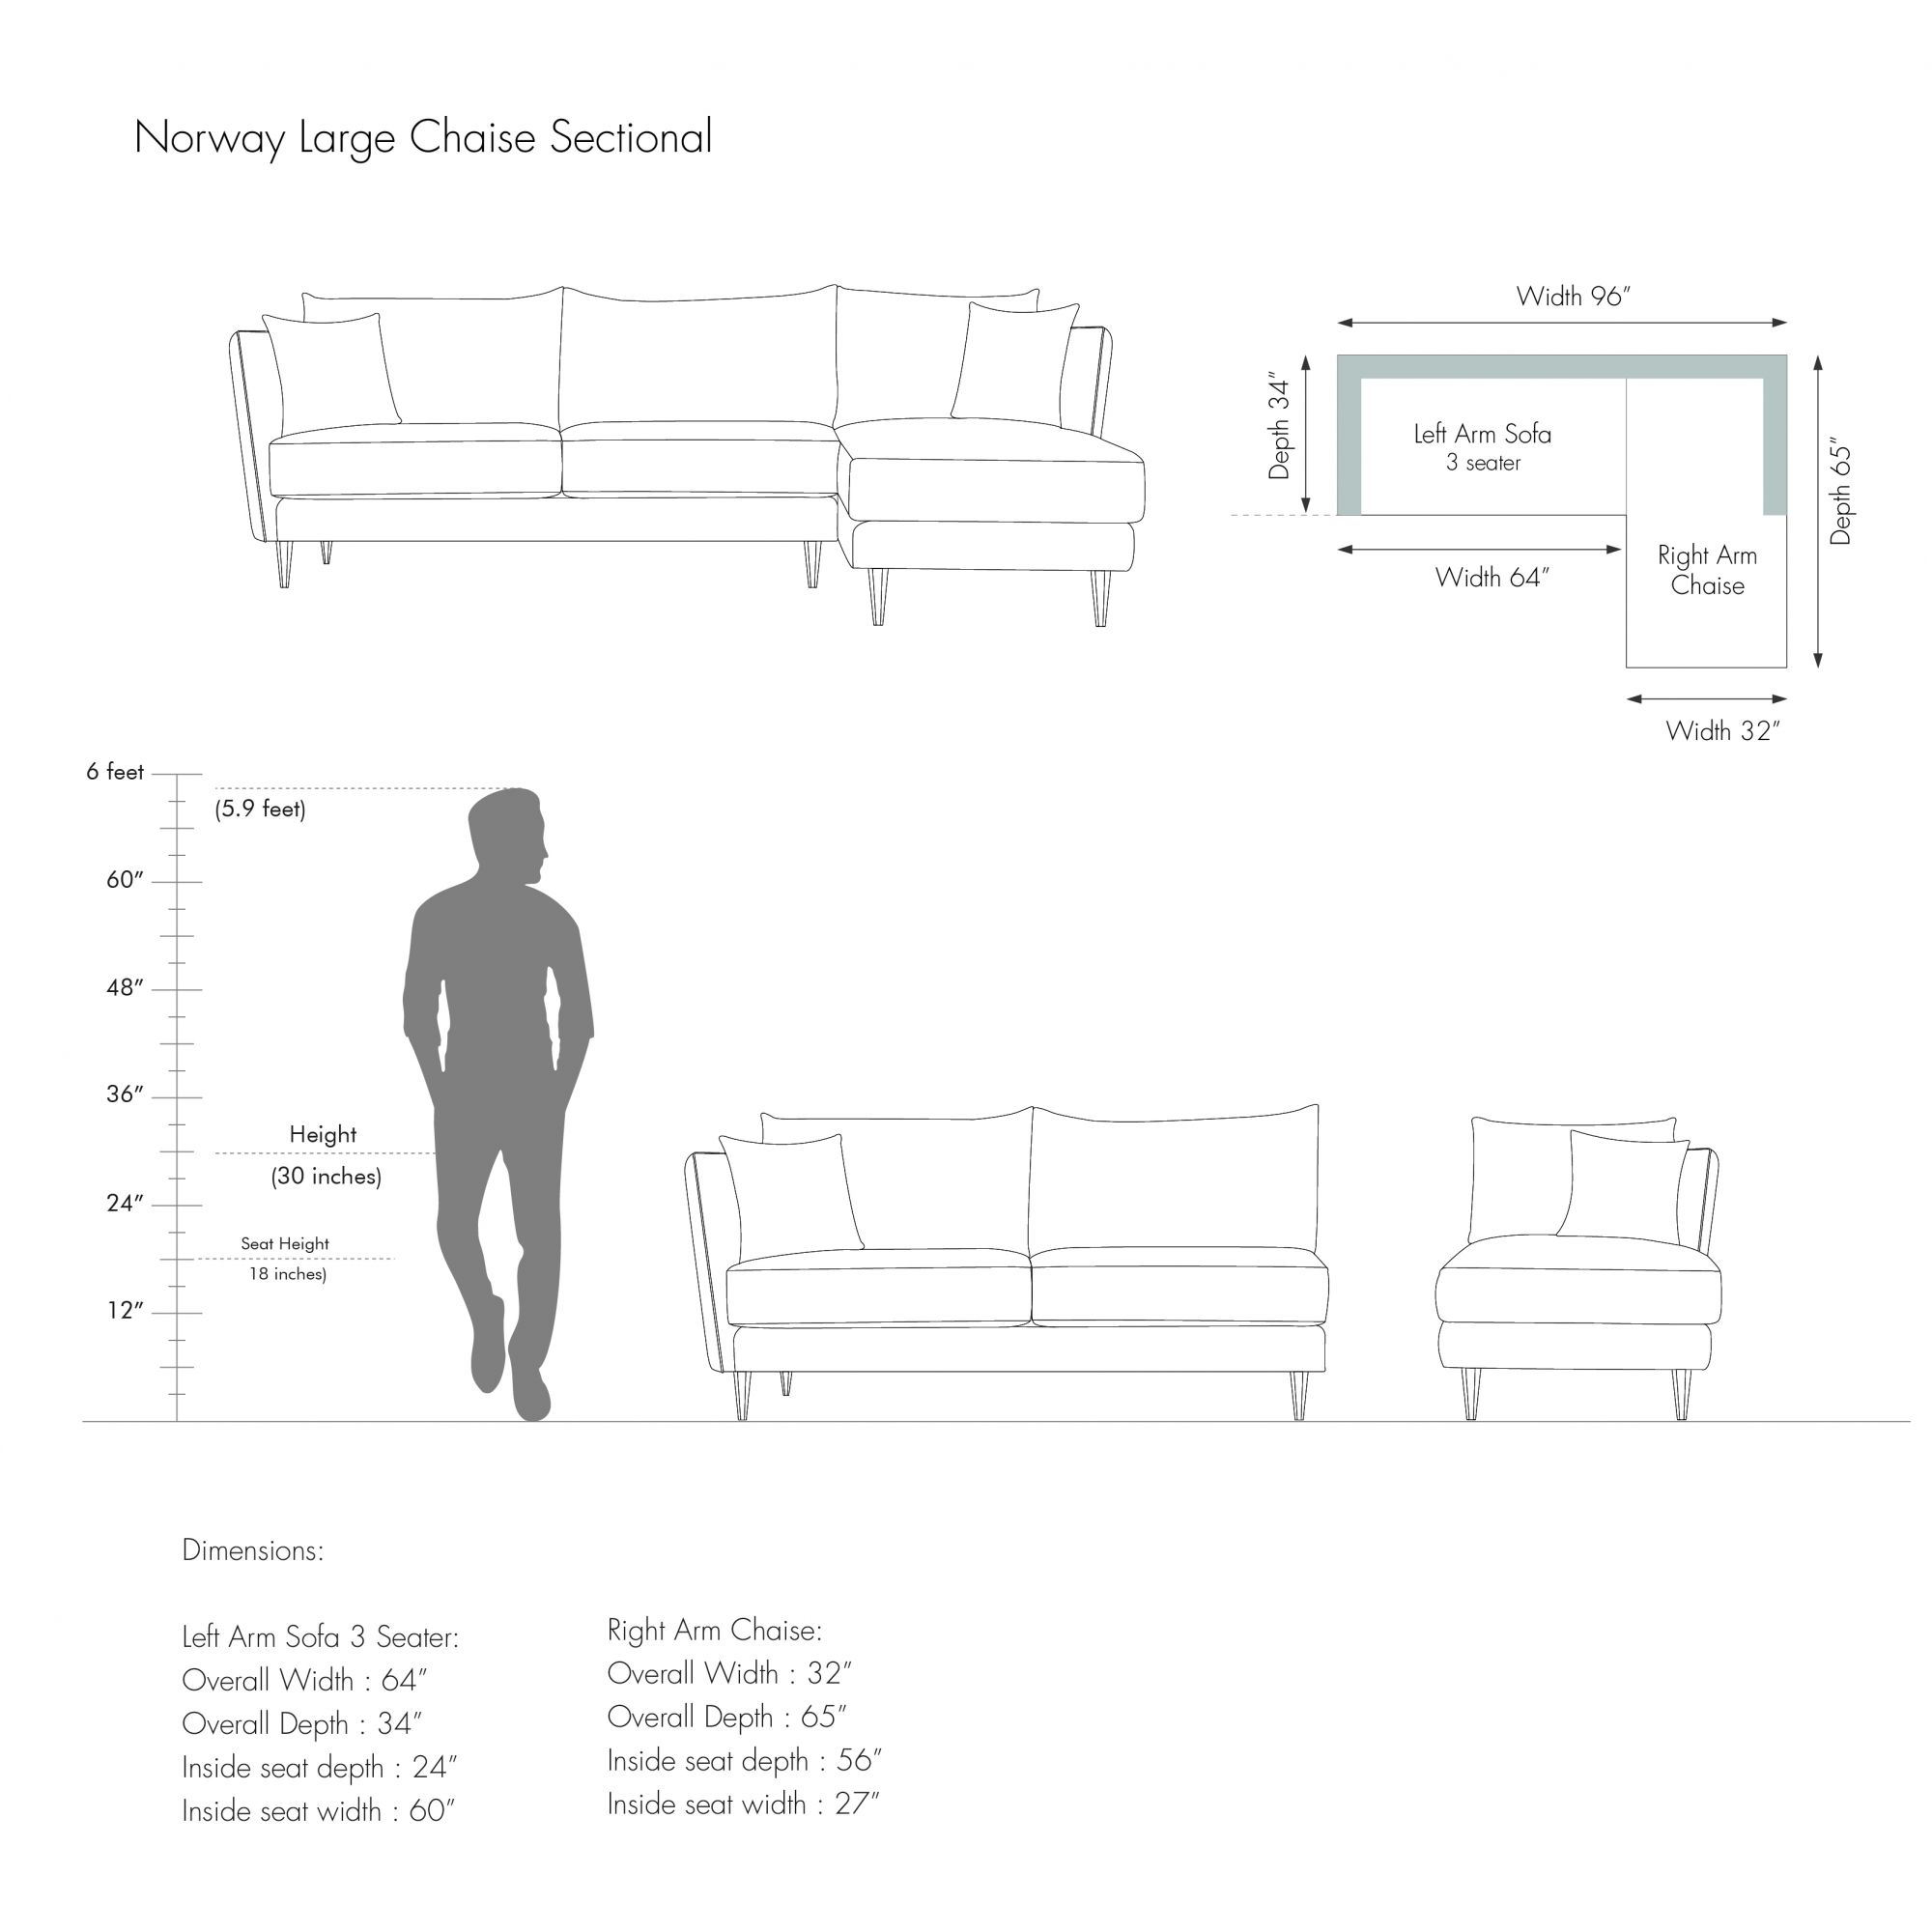 Norway Large Chaise Sectional